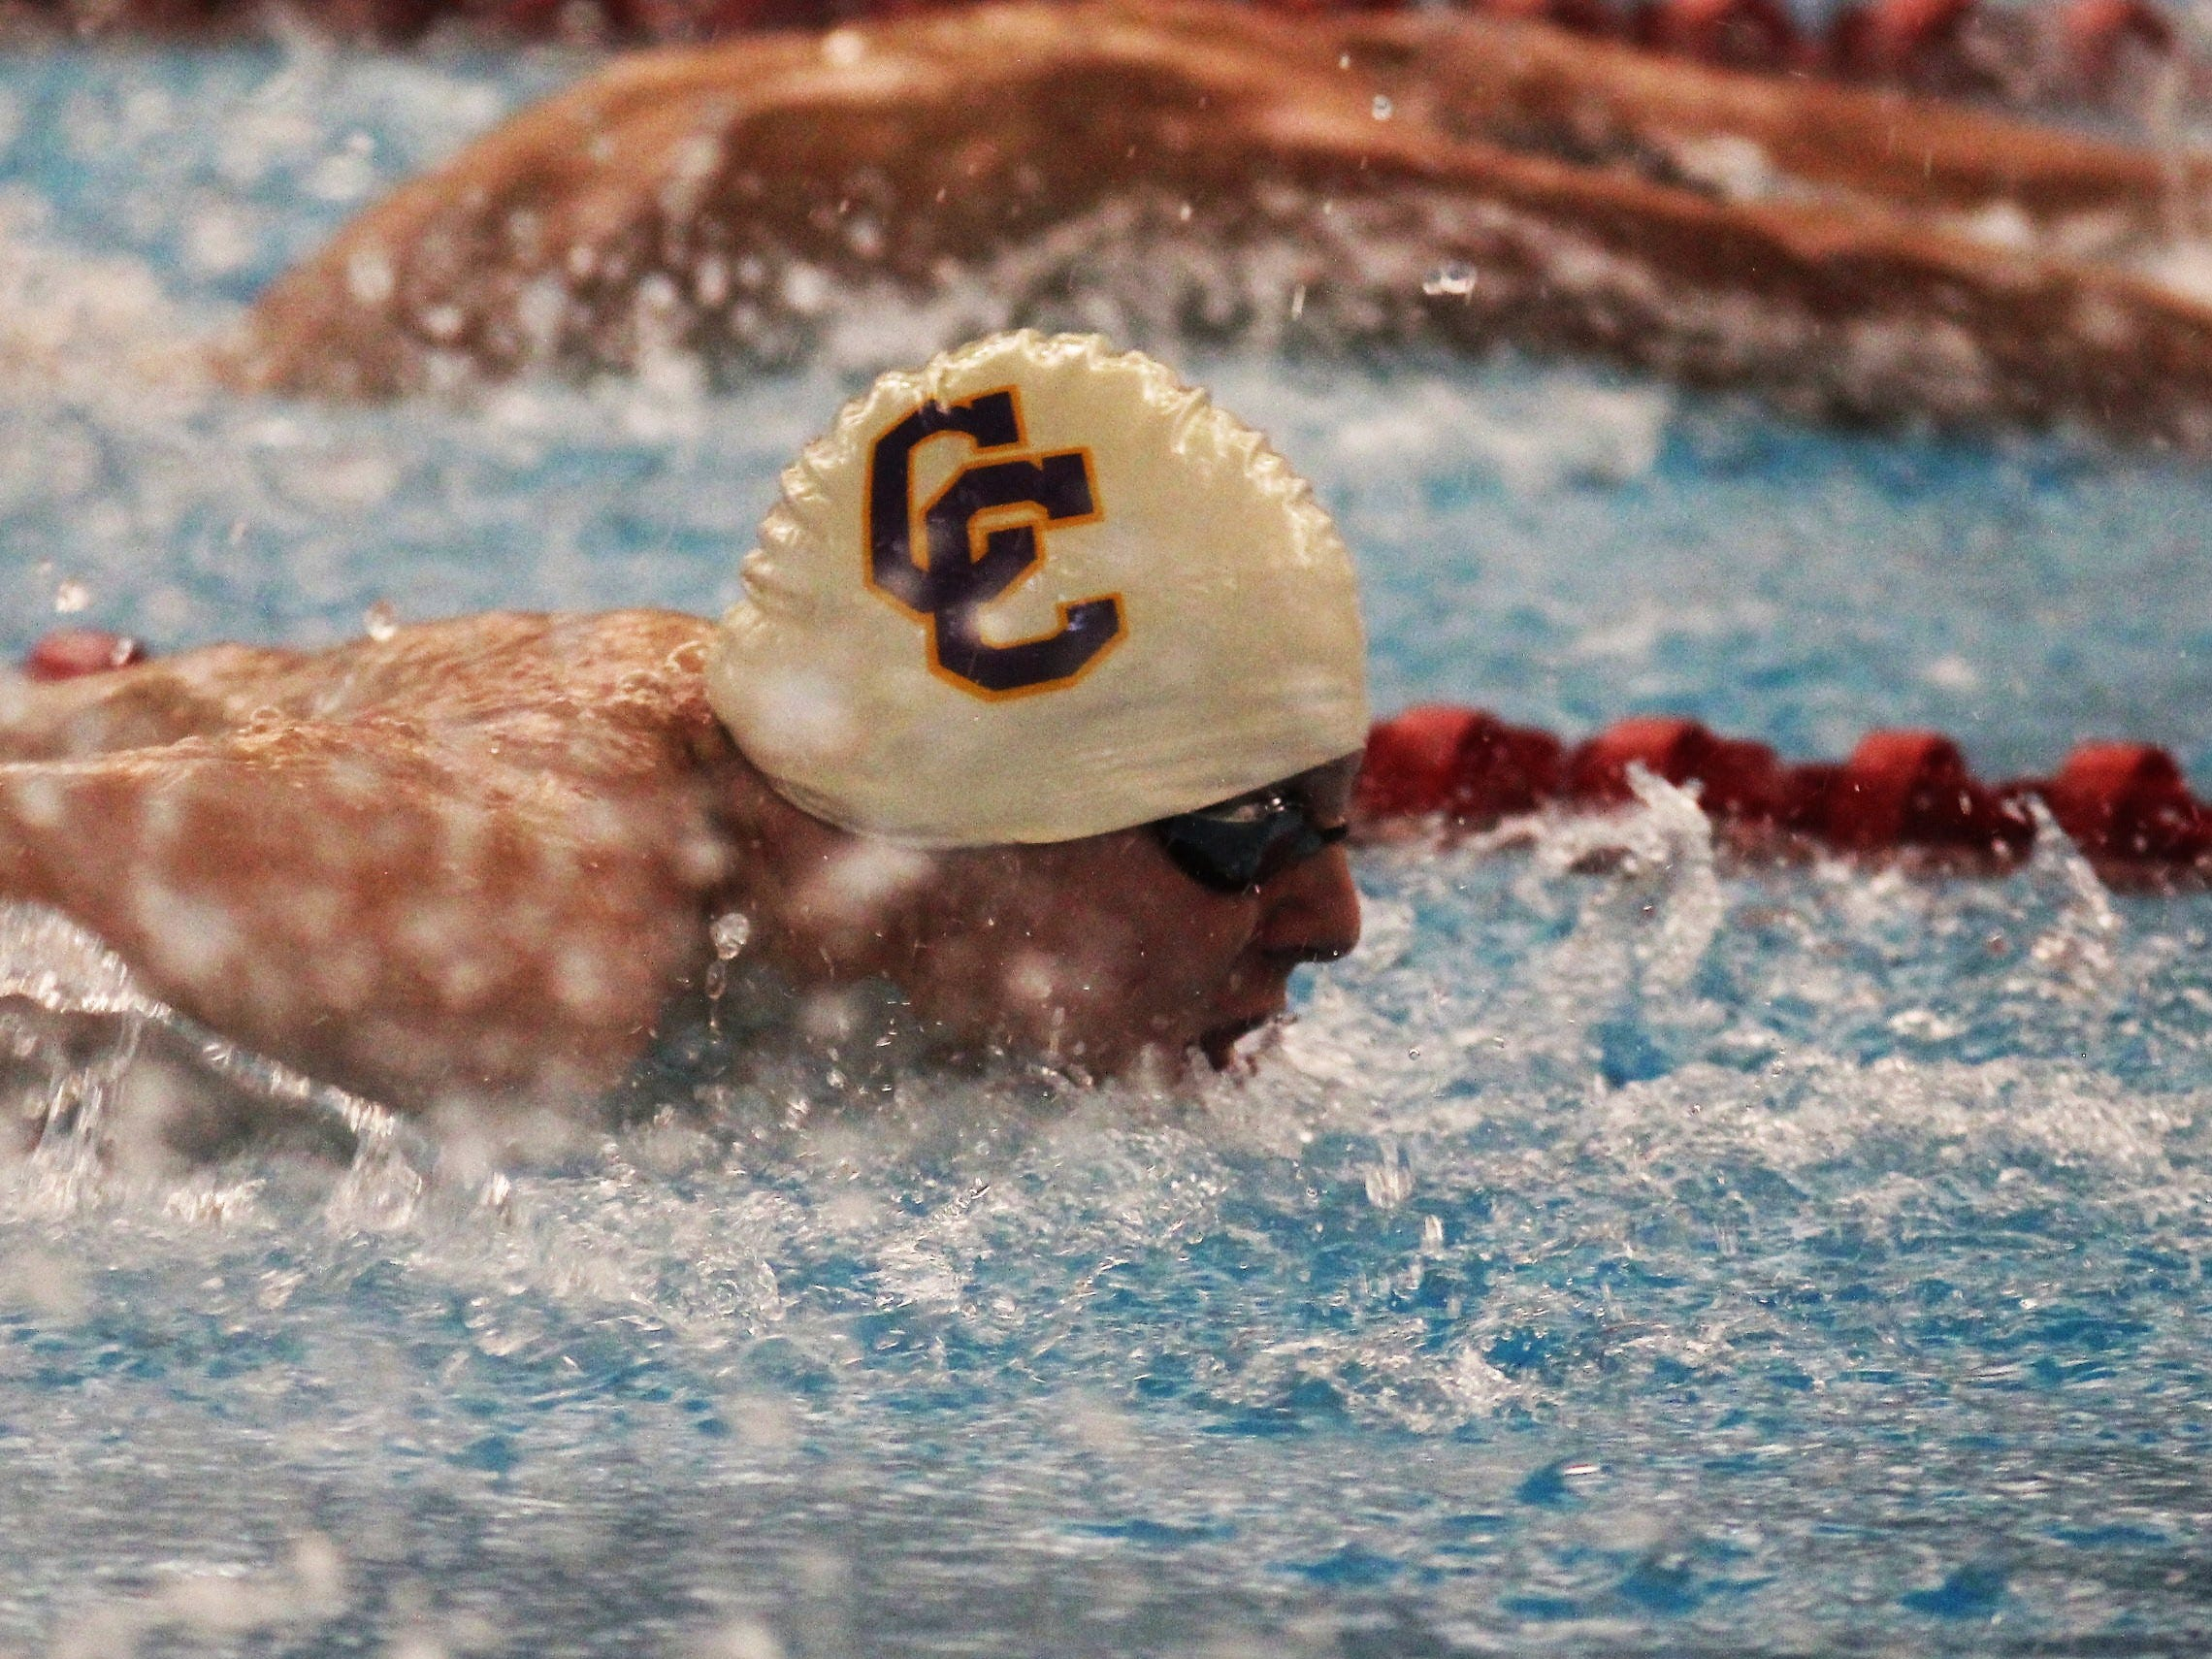 Campbell County senior Colten Stephany in the 100 butterfly during the KHSAA boys state swimming and diving championships Feb. 22, 2019 at the University of Louisville.